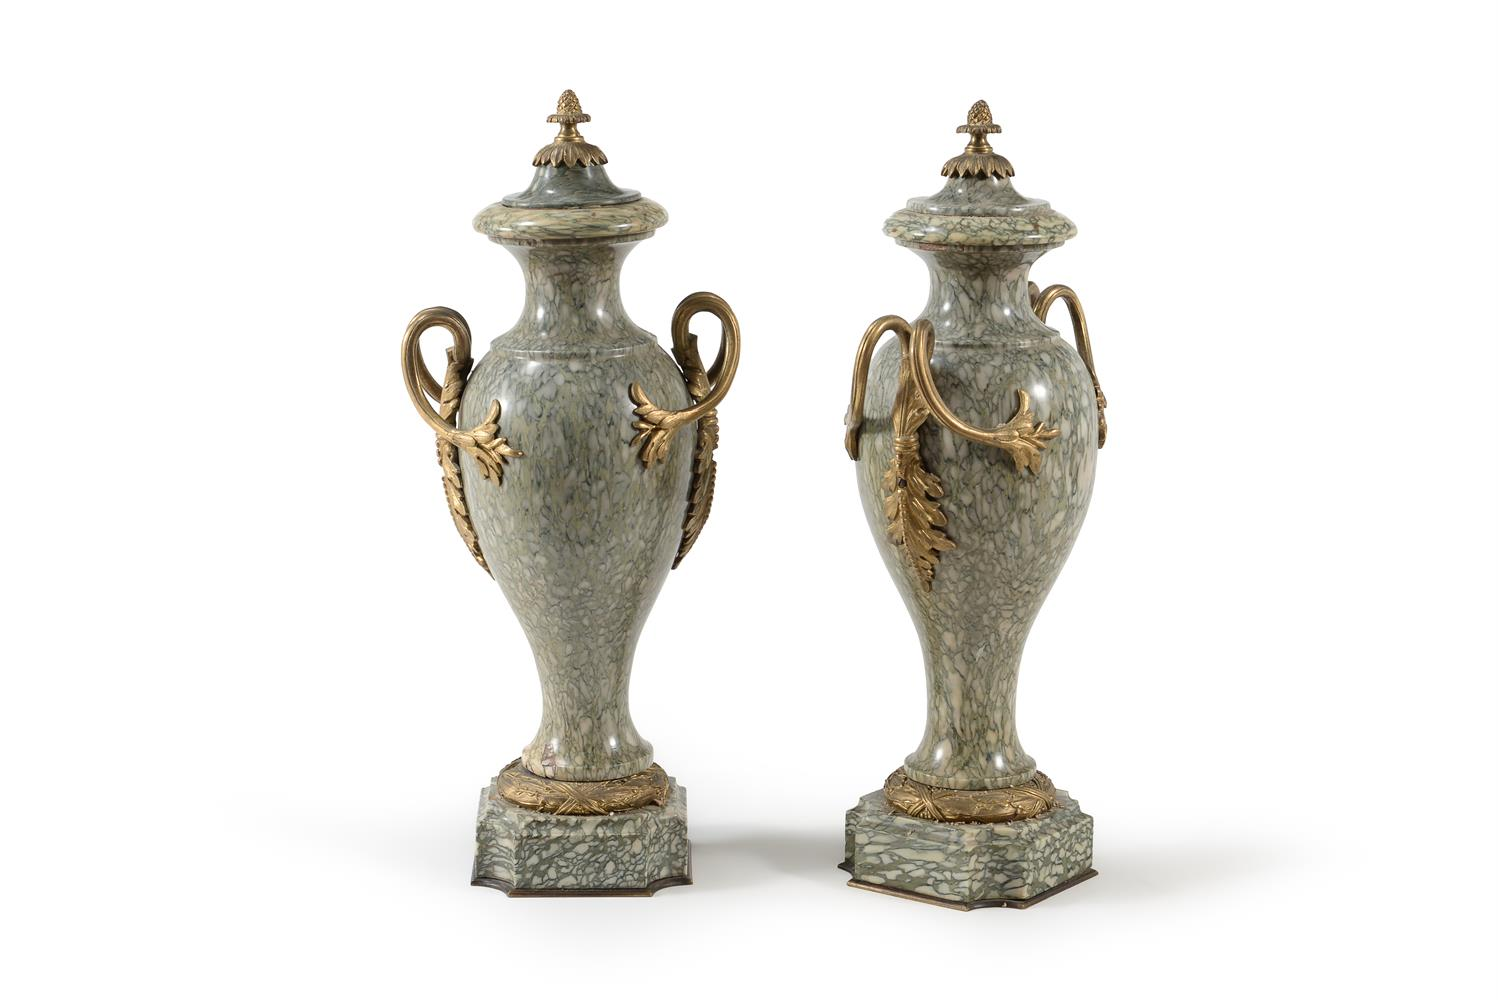 A PAIR OF CONTINENTAL CIPOLLINO VERDE MARBLE AND GILT METAL MOUNTED URNS, LATE 19TH/20TH CENTURY - Image 2 of 3